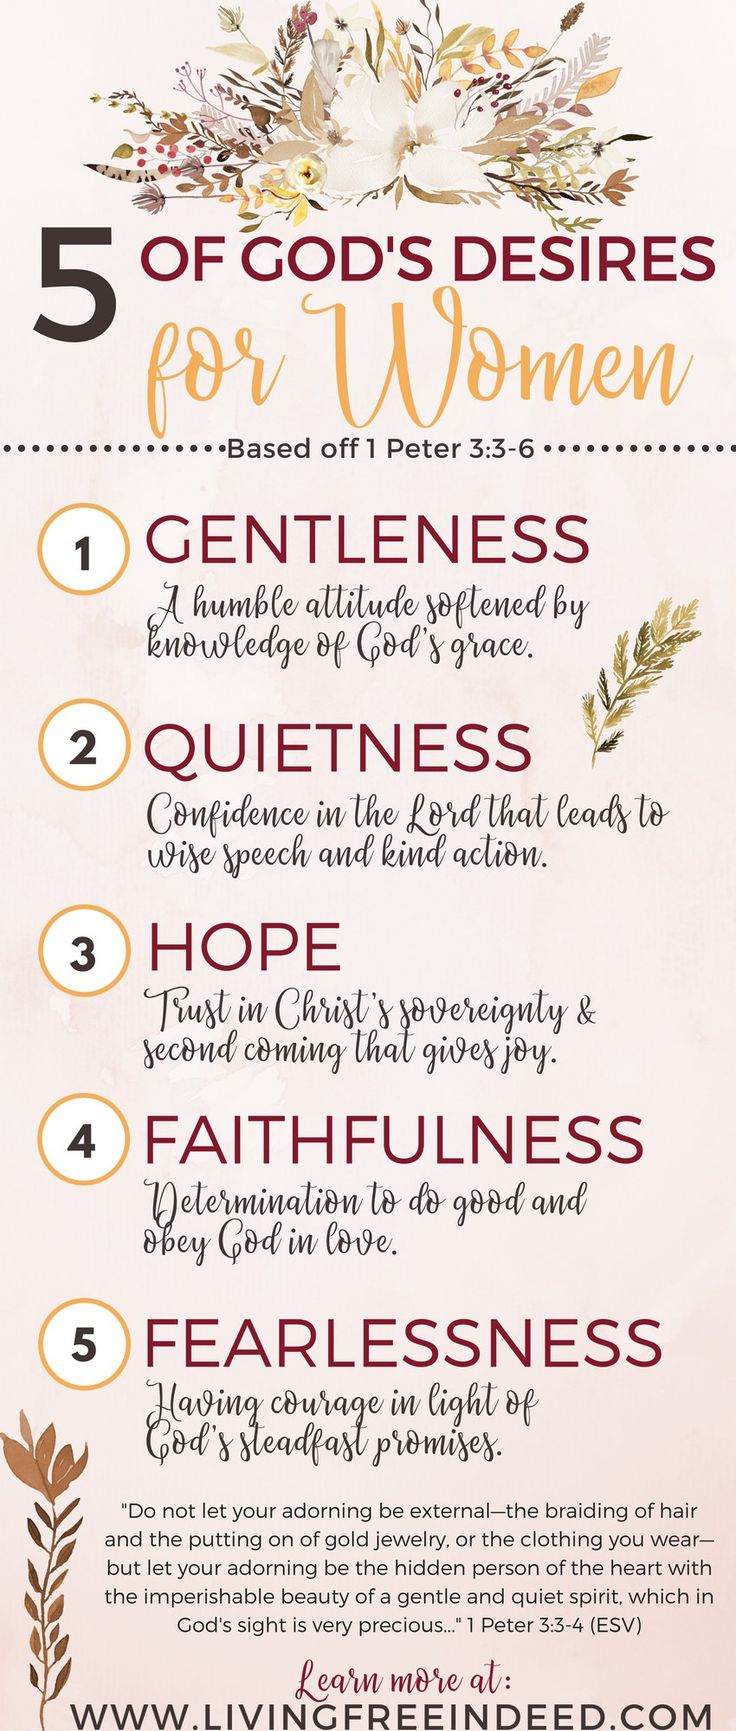 God desires women with inner beauty. It's about the heart hidden inside - the spirit that is imperishable. Here are 5 qualities of holy womanhood. | Biblical womanhood | Verses about women in the Bible | How to Be a Godly Woman | How to Follow Jesus | Bible Verses about Femininity | Hope for Women | God's Design for Women